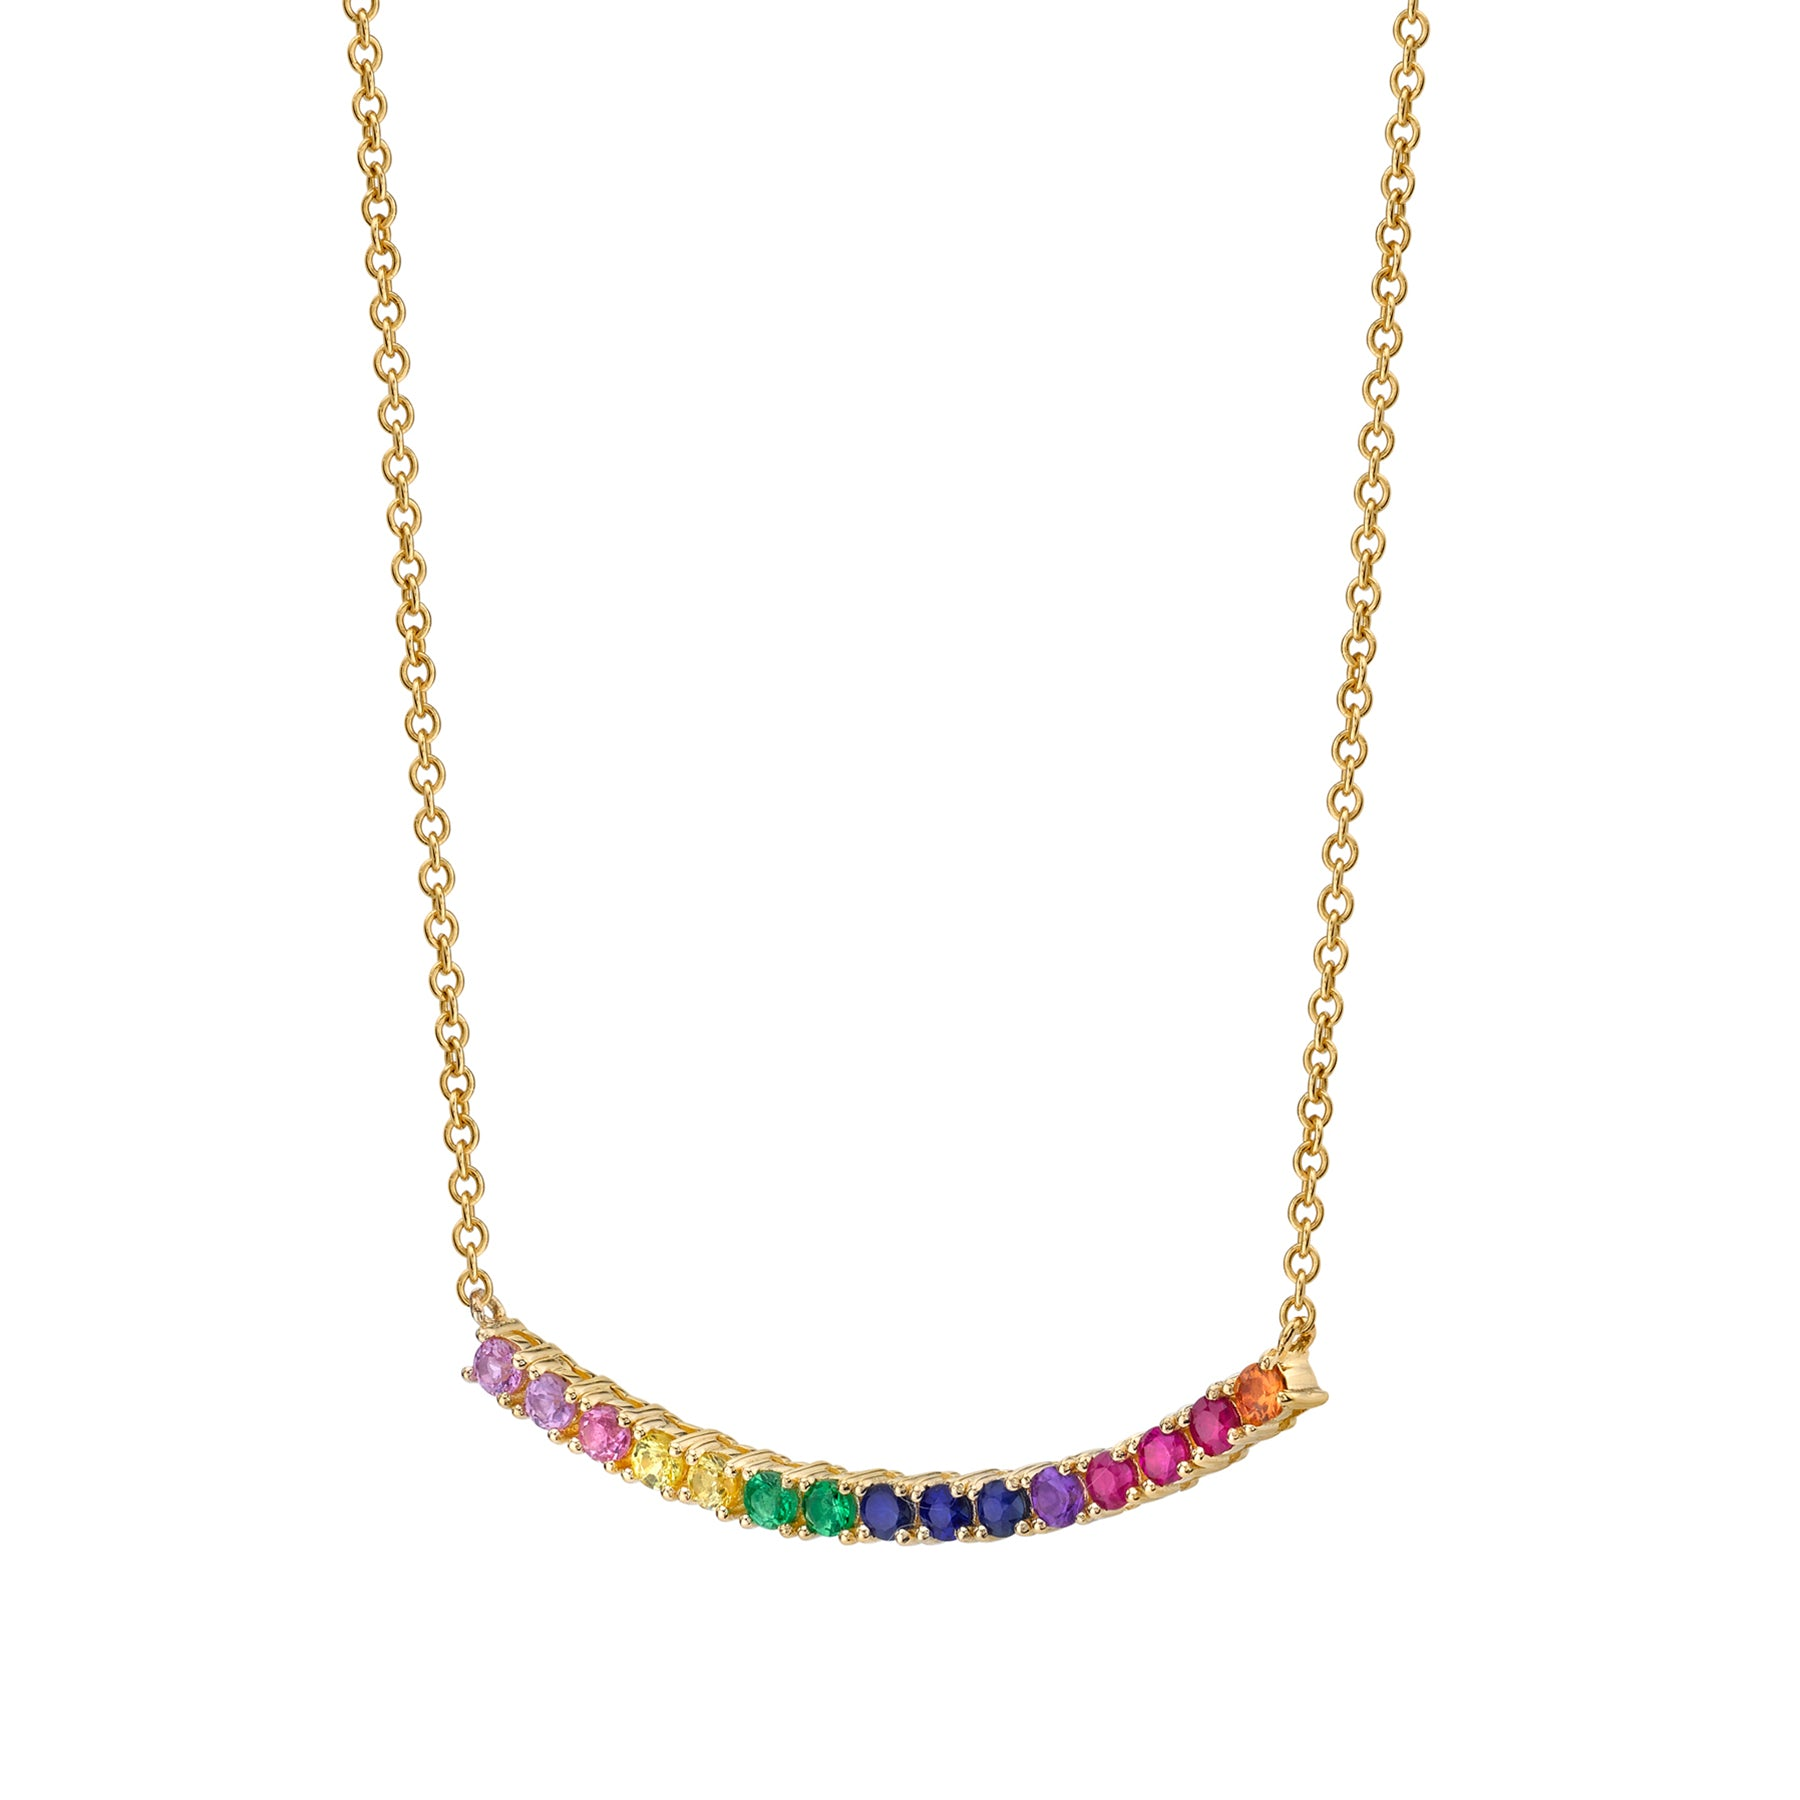 MINI RAINBOW TENNIS NECKLACE